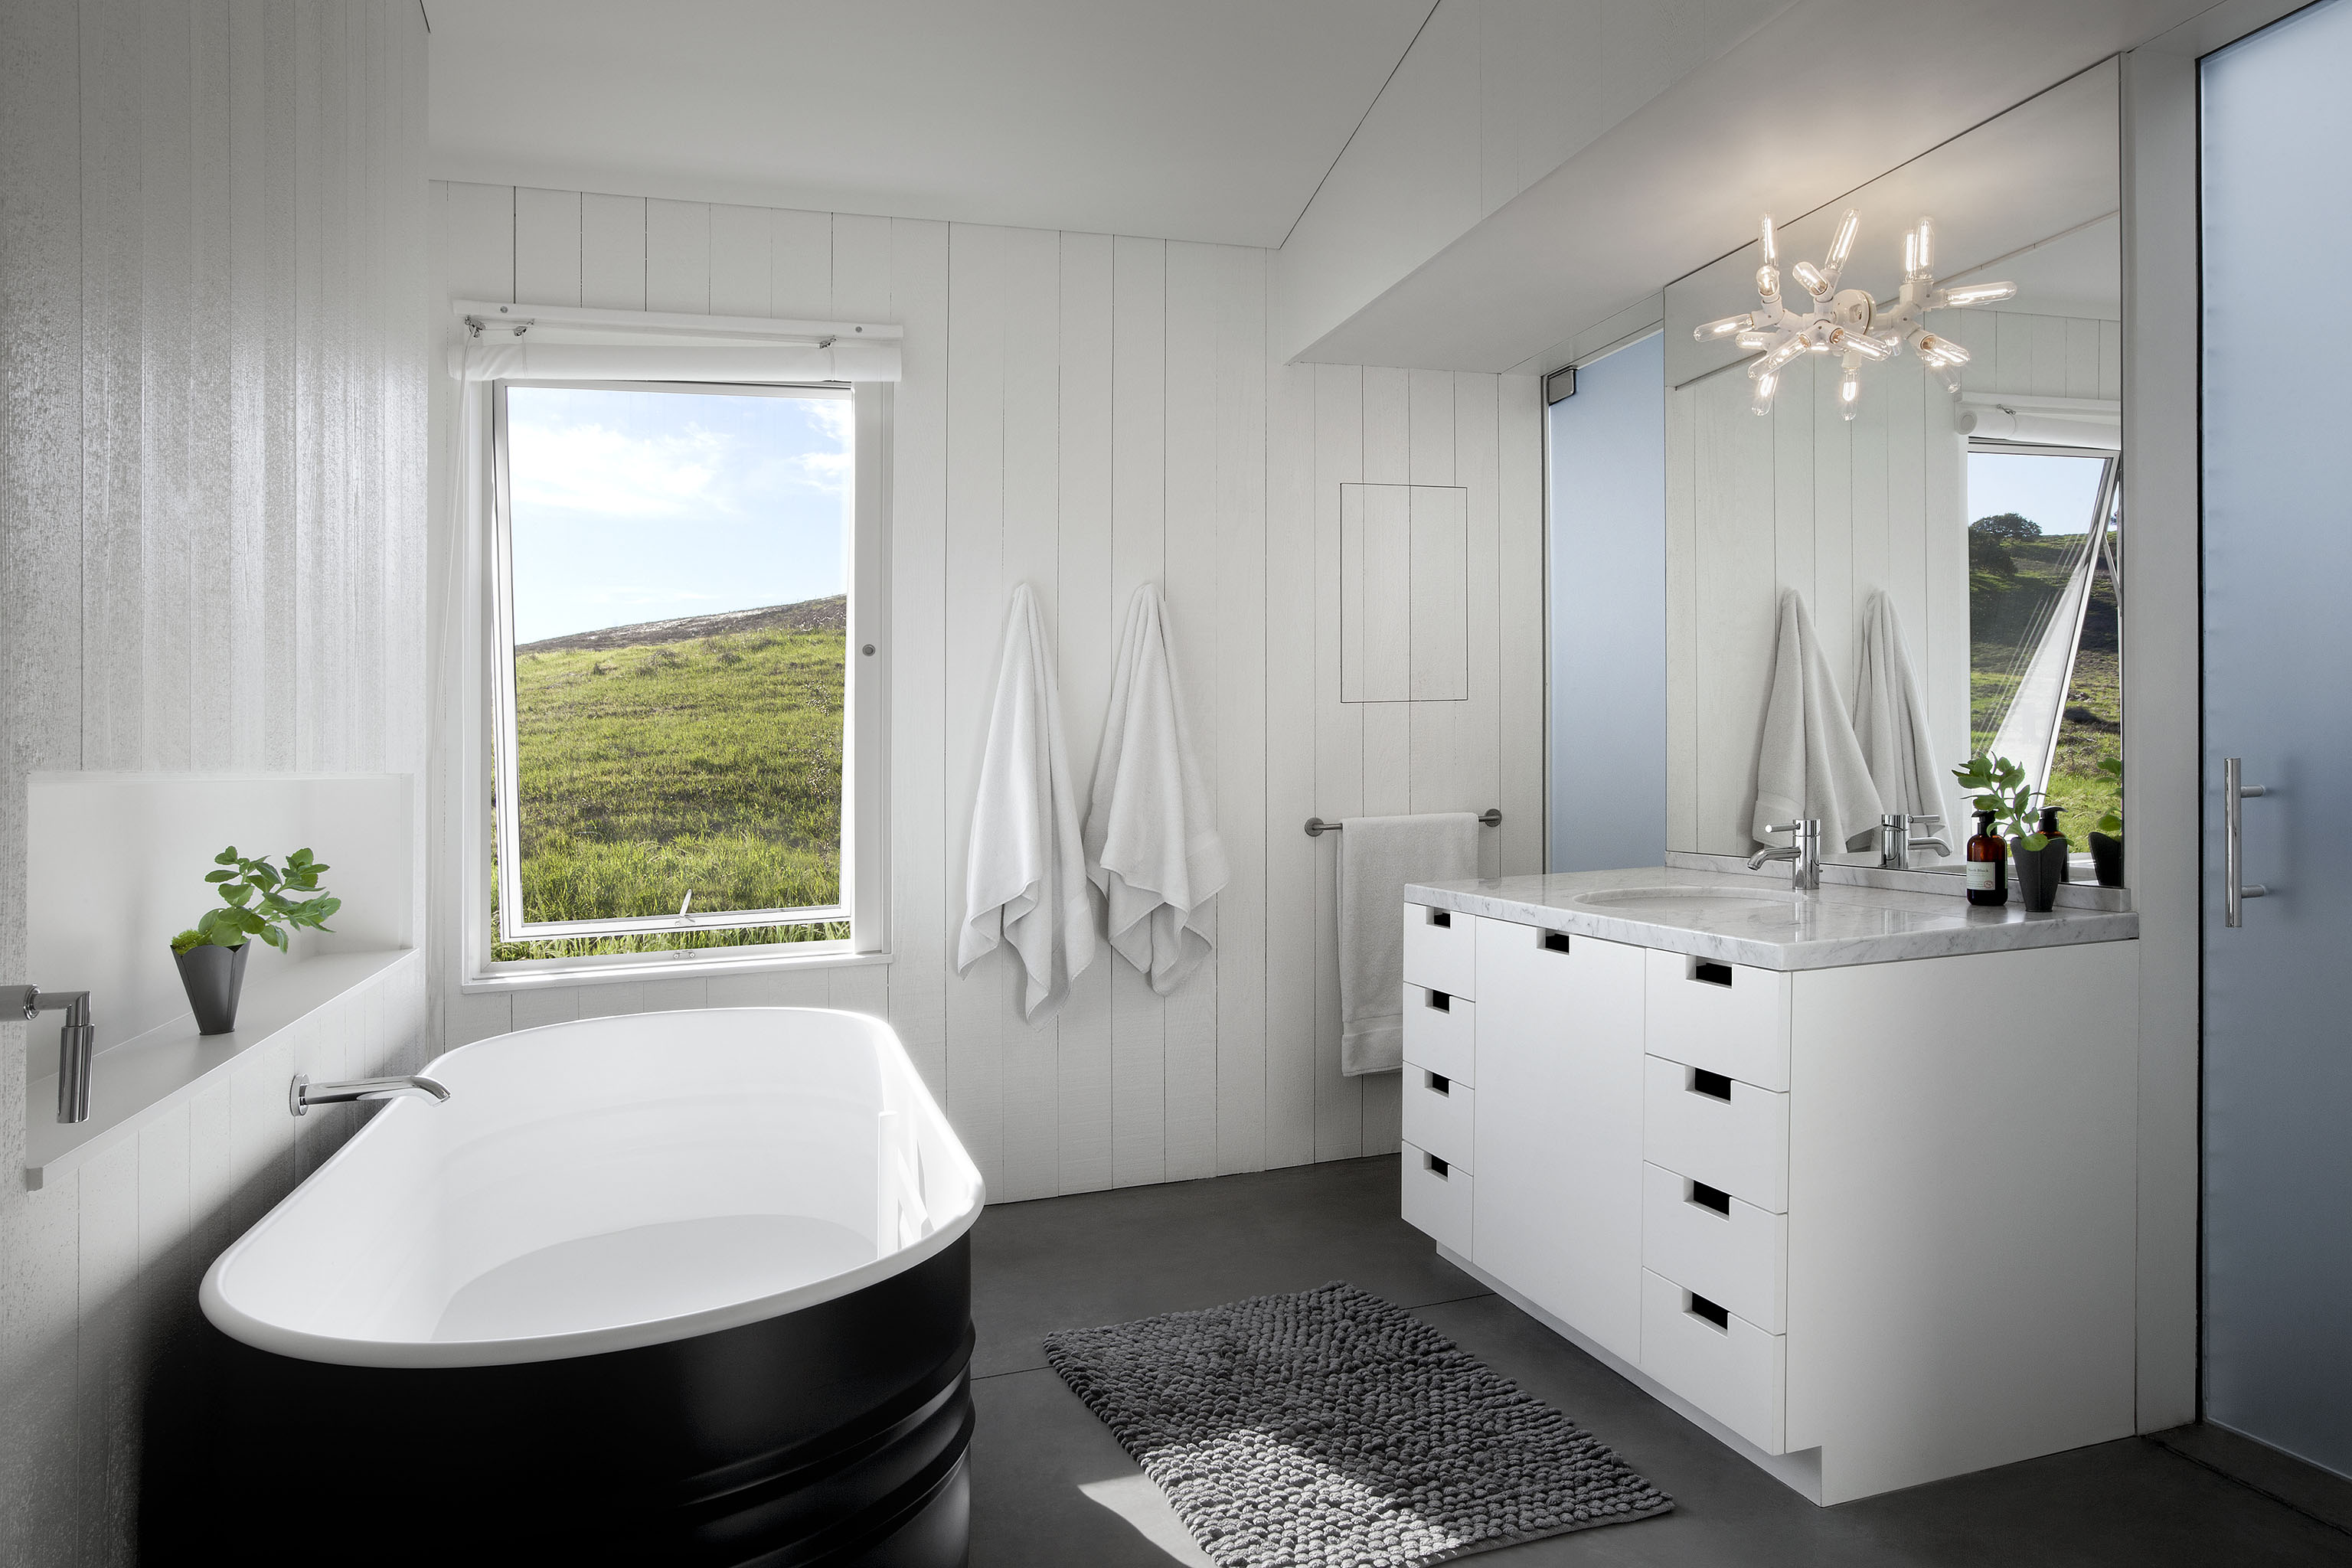 Bathroom reflects the muted tones of the living room, with bold white and soft grey mixing throughout. Large pedestal tub in black sits across from minimalist vanity with marble countertop.